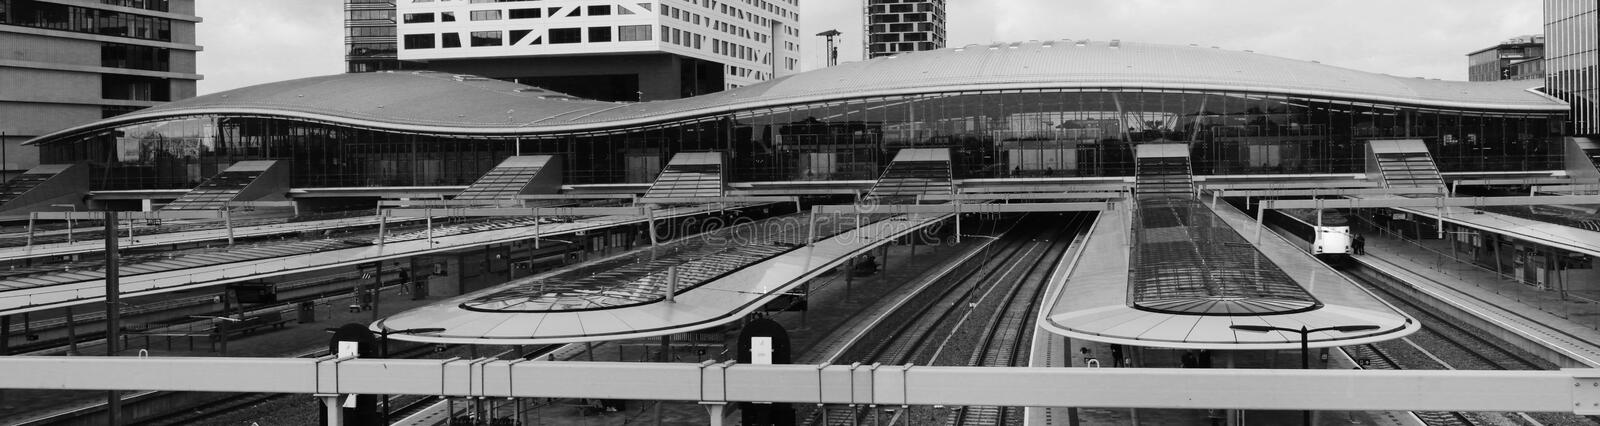 Utrecht, the Netherlands, February 15, 2019: Black white panorama of Utrecht central station, in the netherlands royalty free stock image